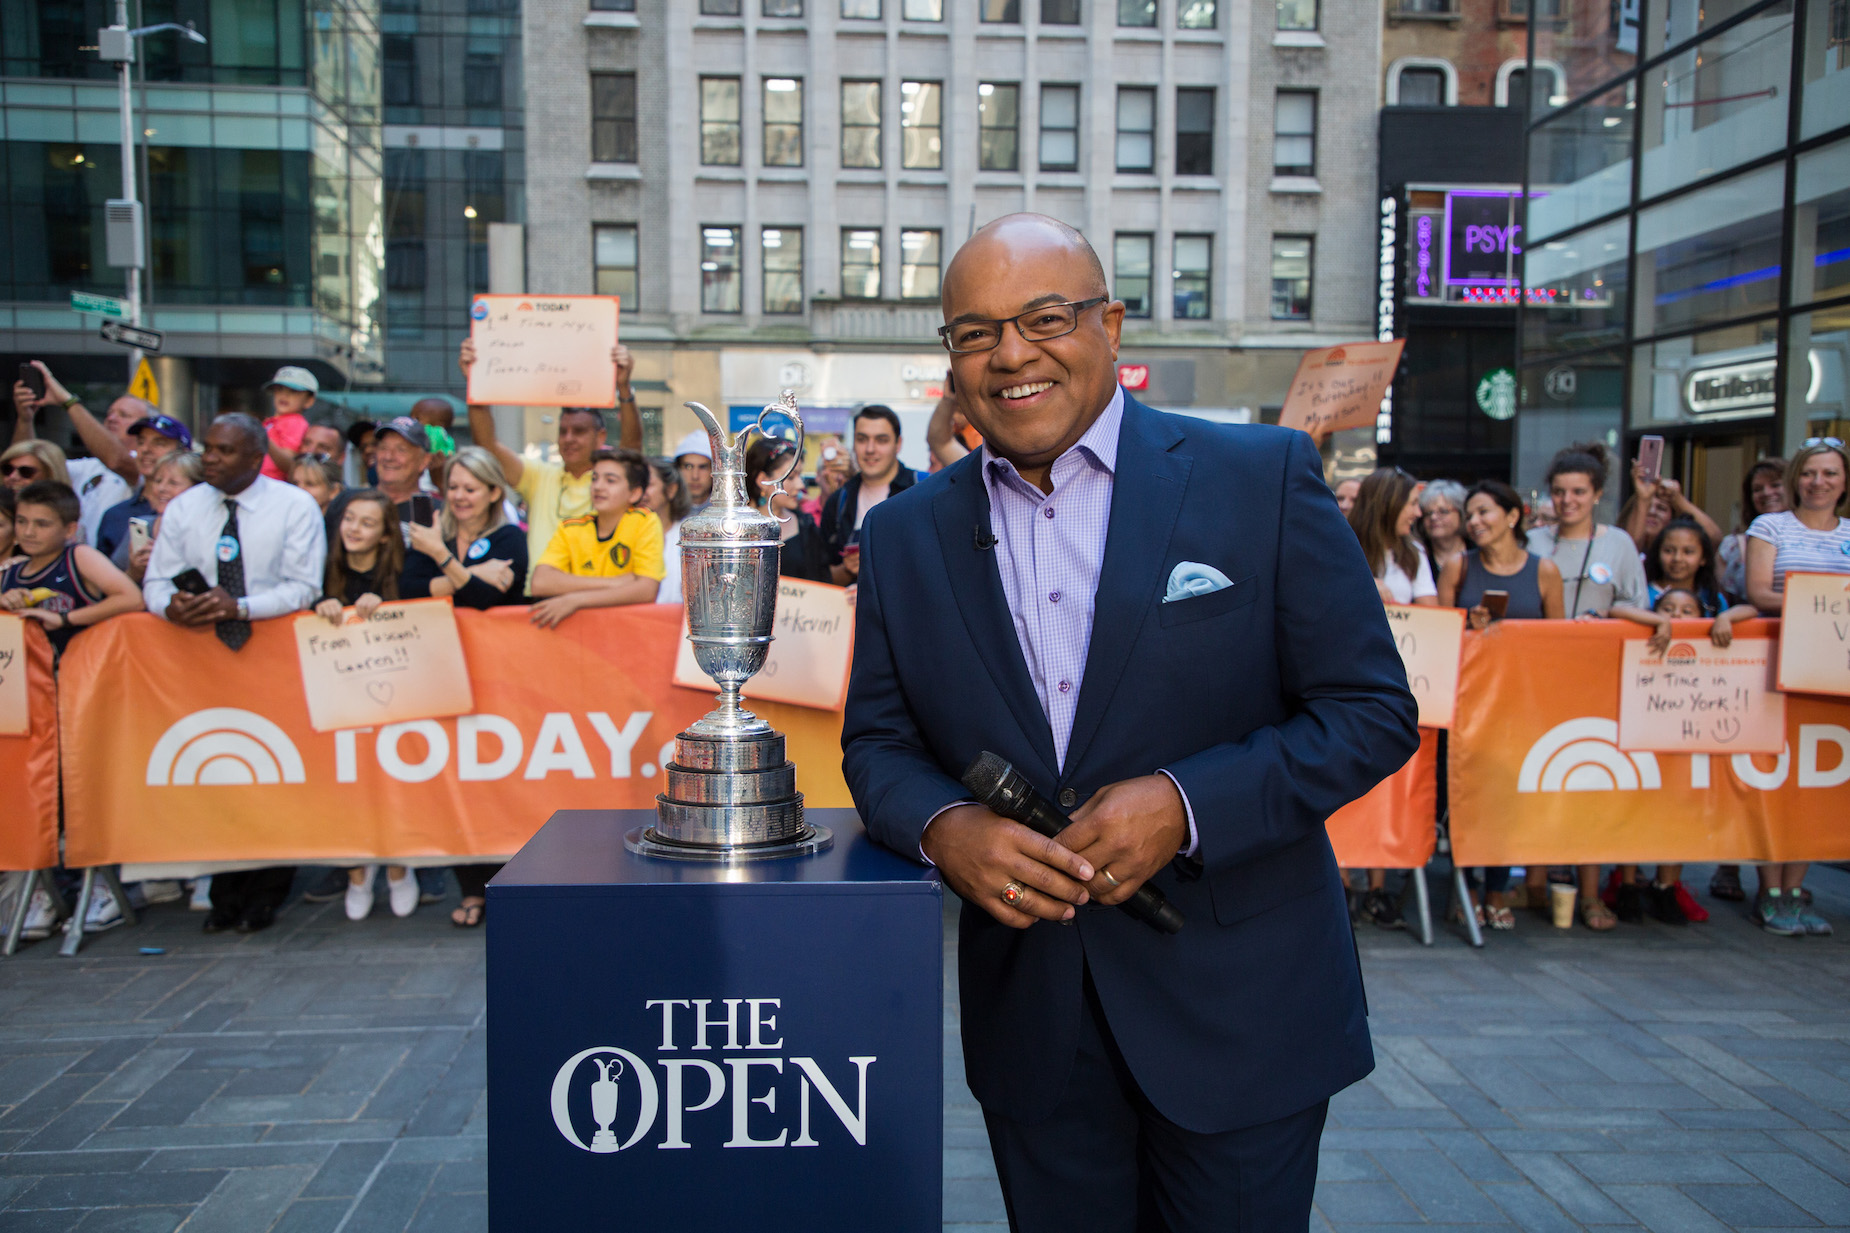 NBC's Mike Tirico once raised some eyebrows with comments about his race.